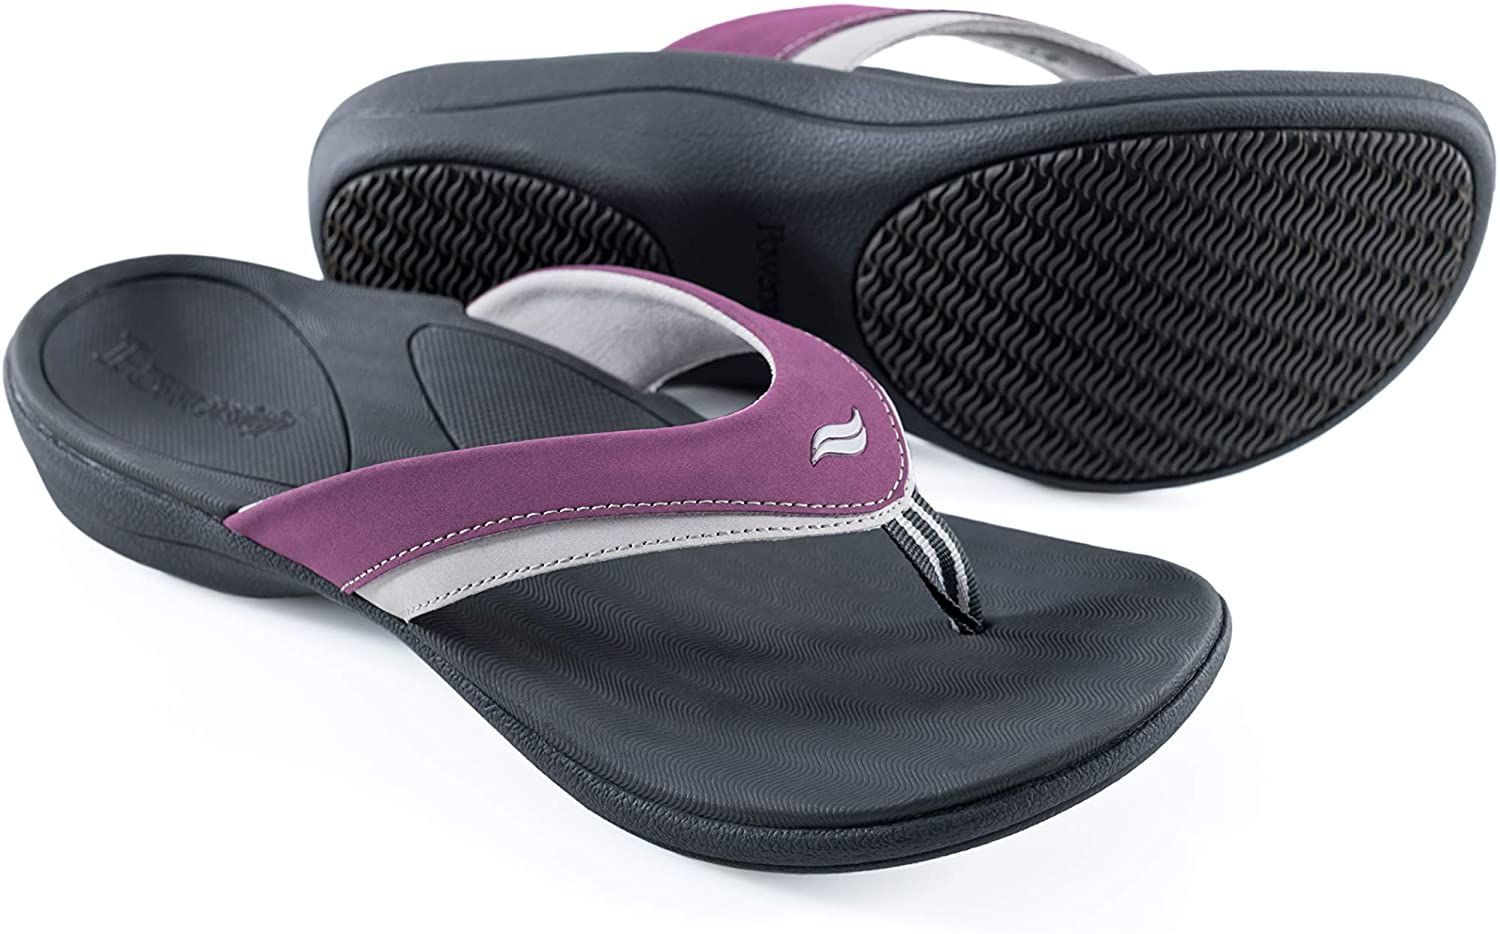 Powerstep Women's Fusion Sandals Flip-Flop